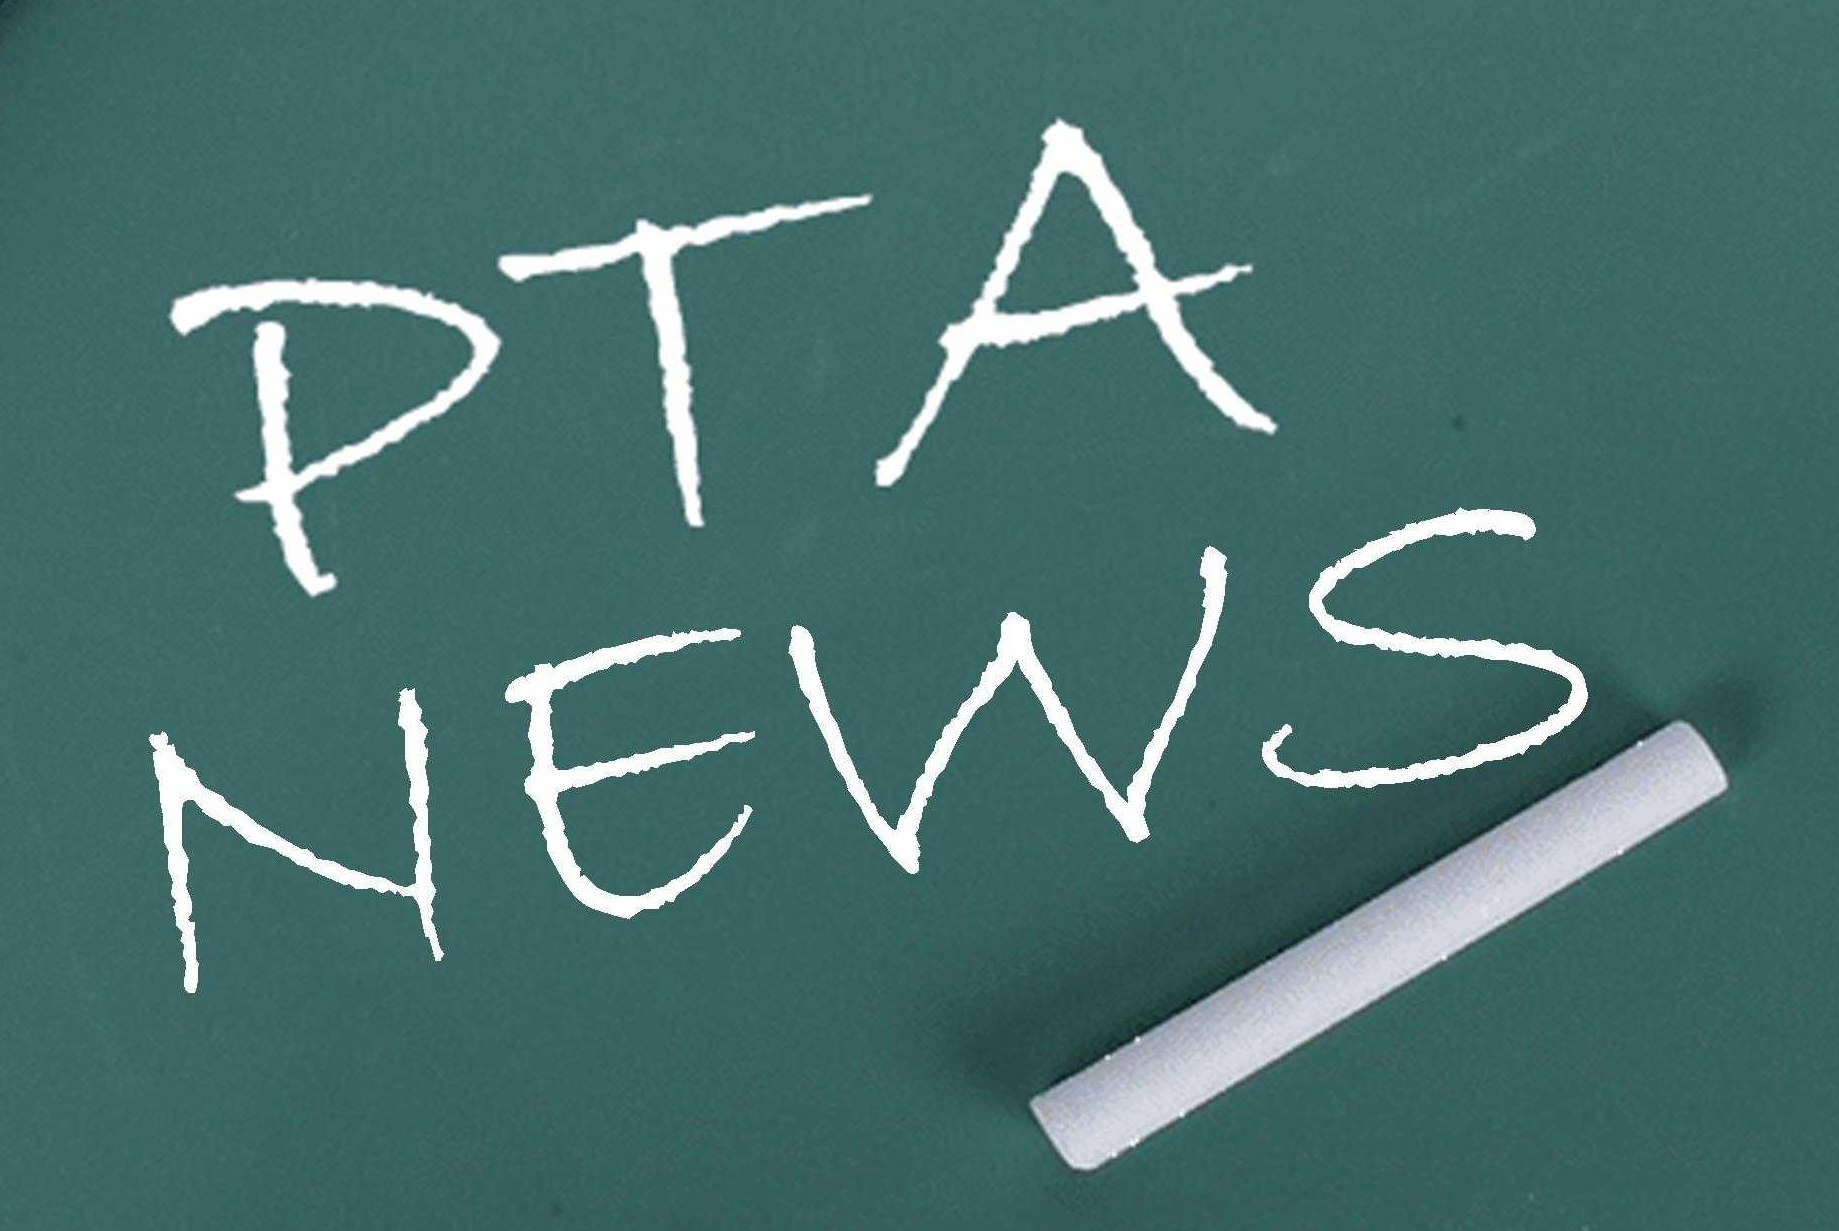 november pta general membership meeting  thursday  11  12